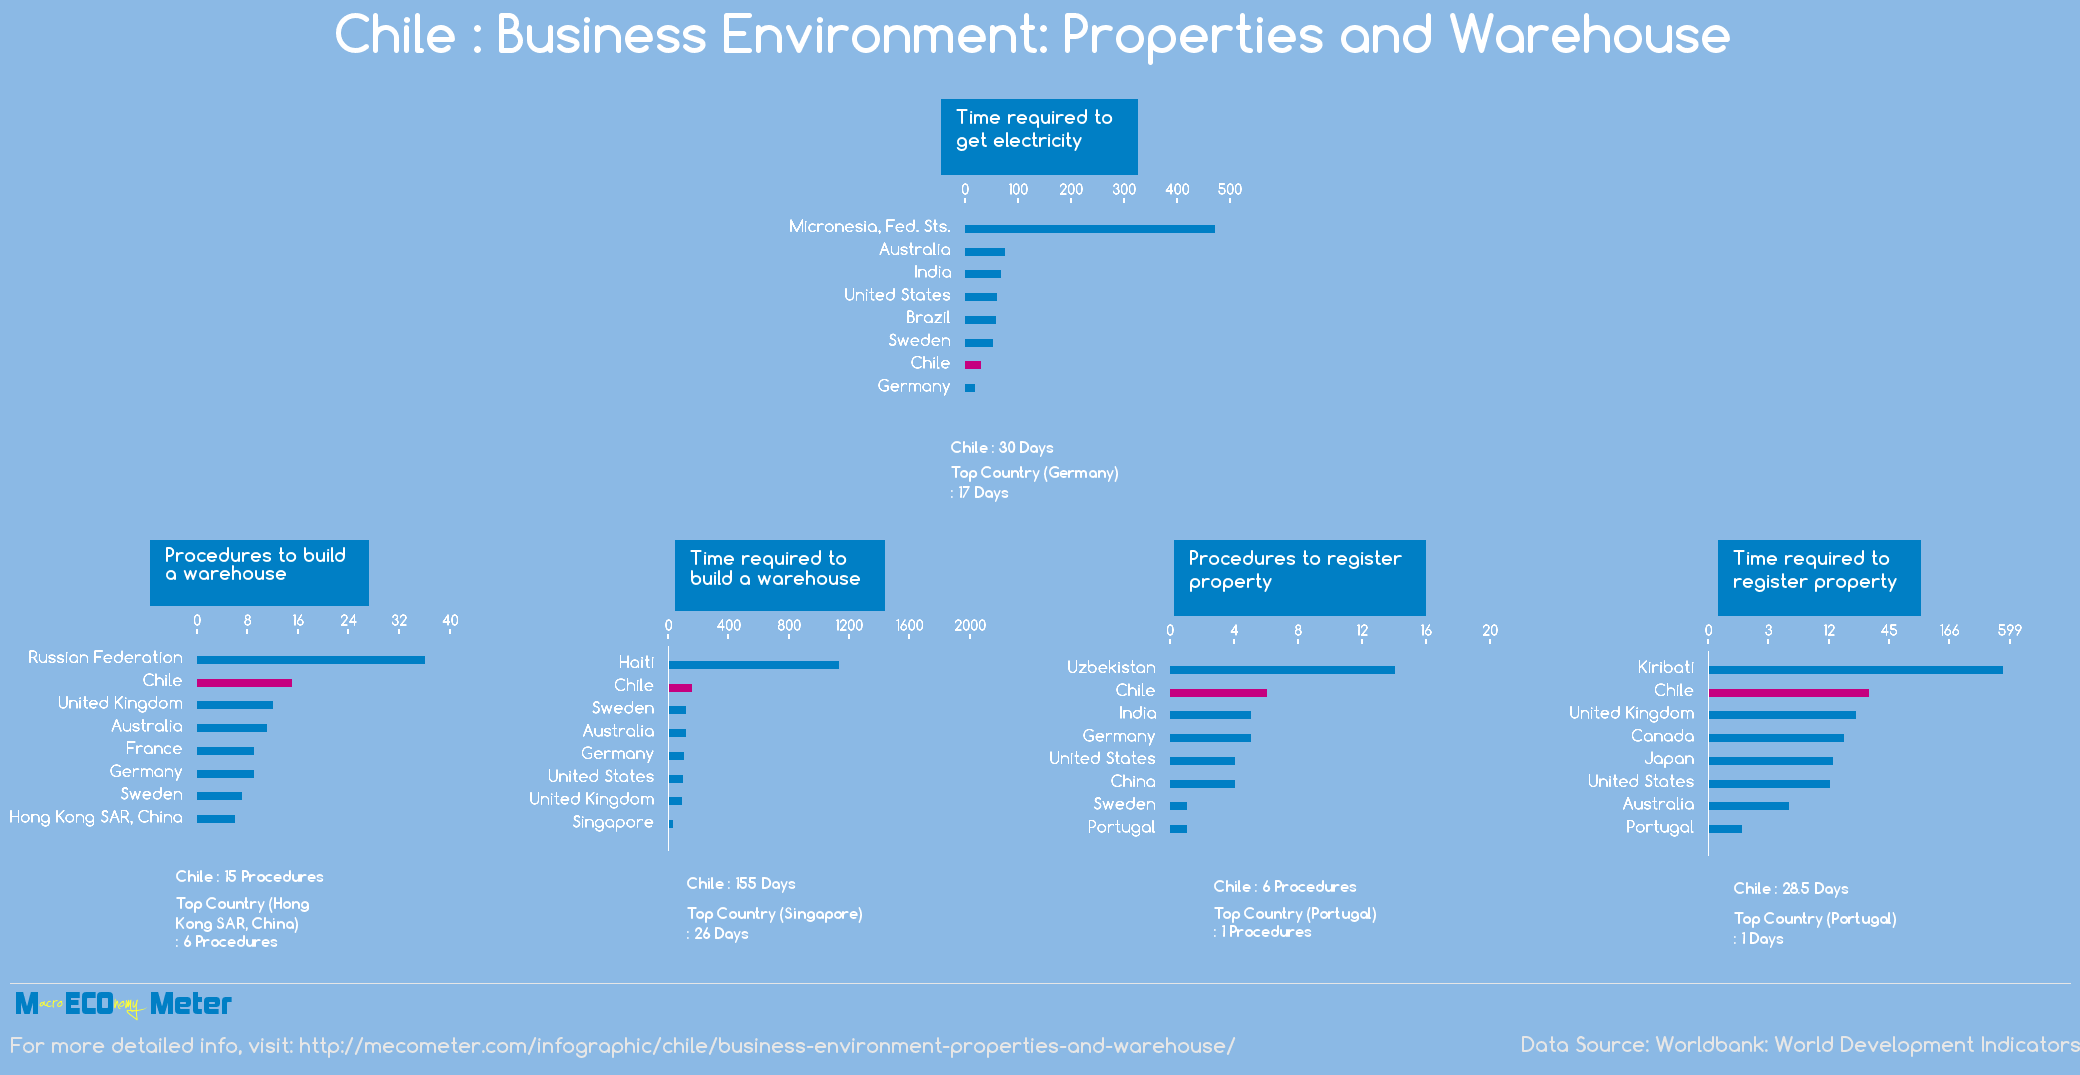 Chile : Business Environment: Properties and Warehouse